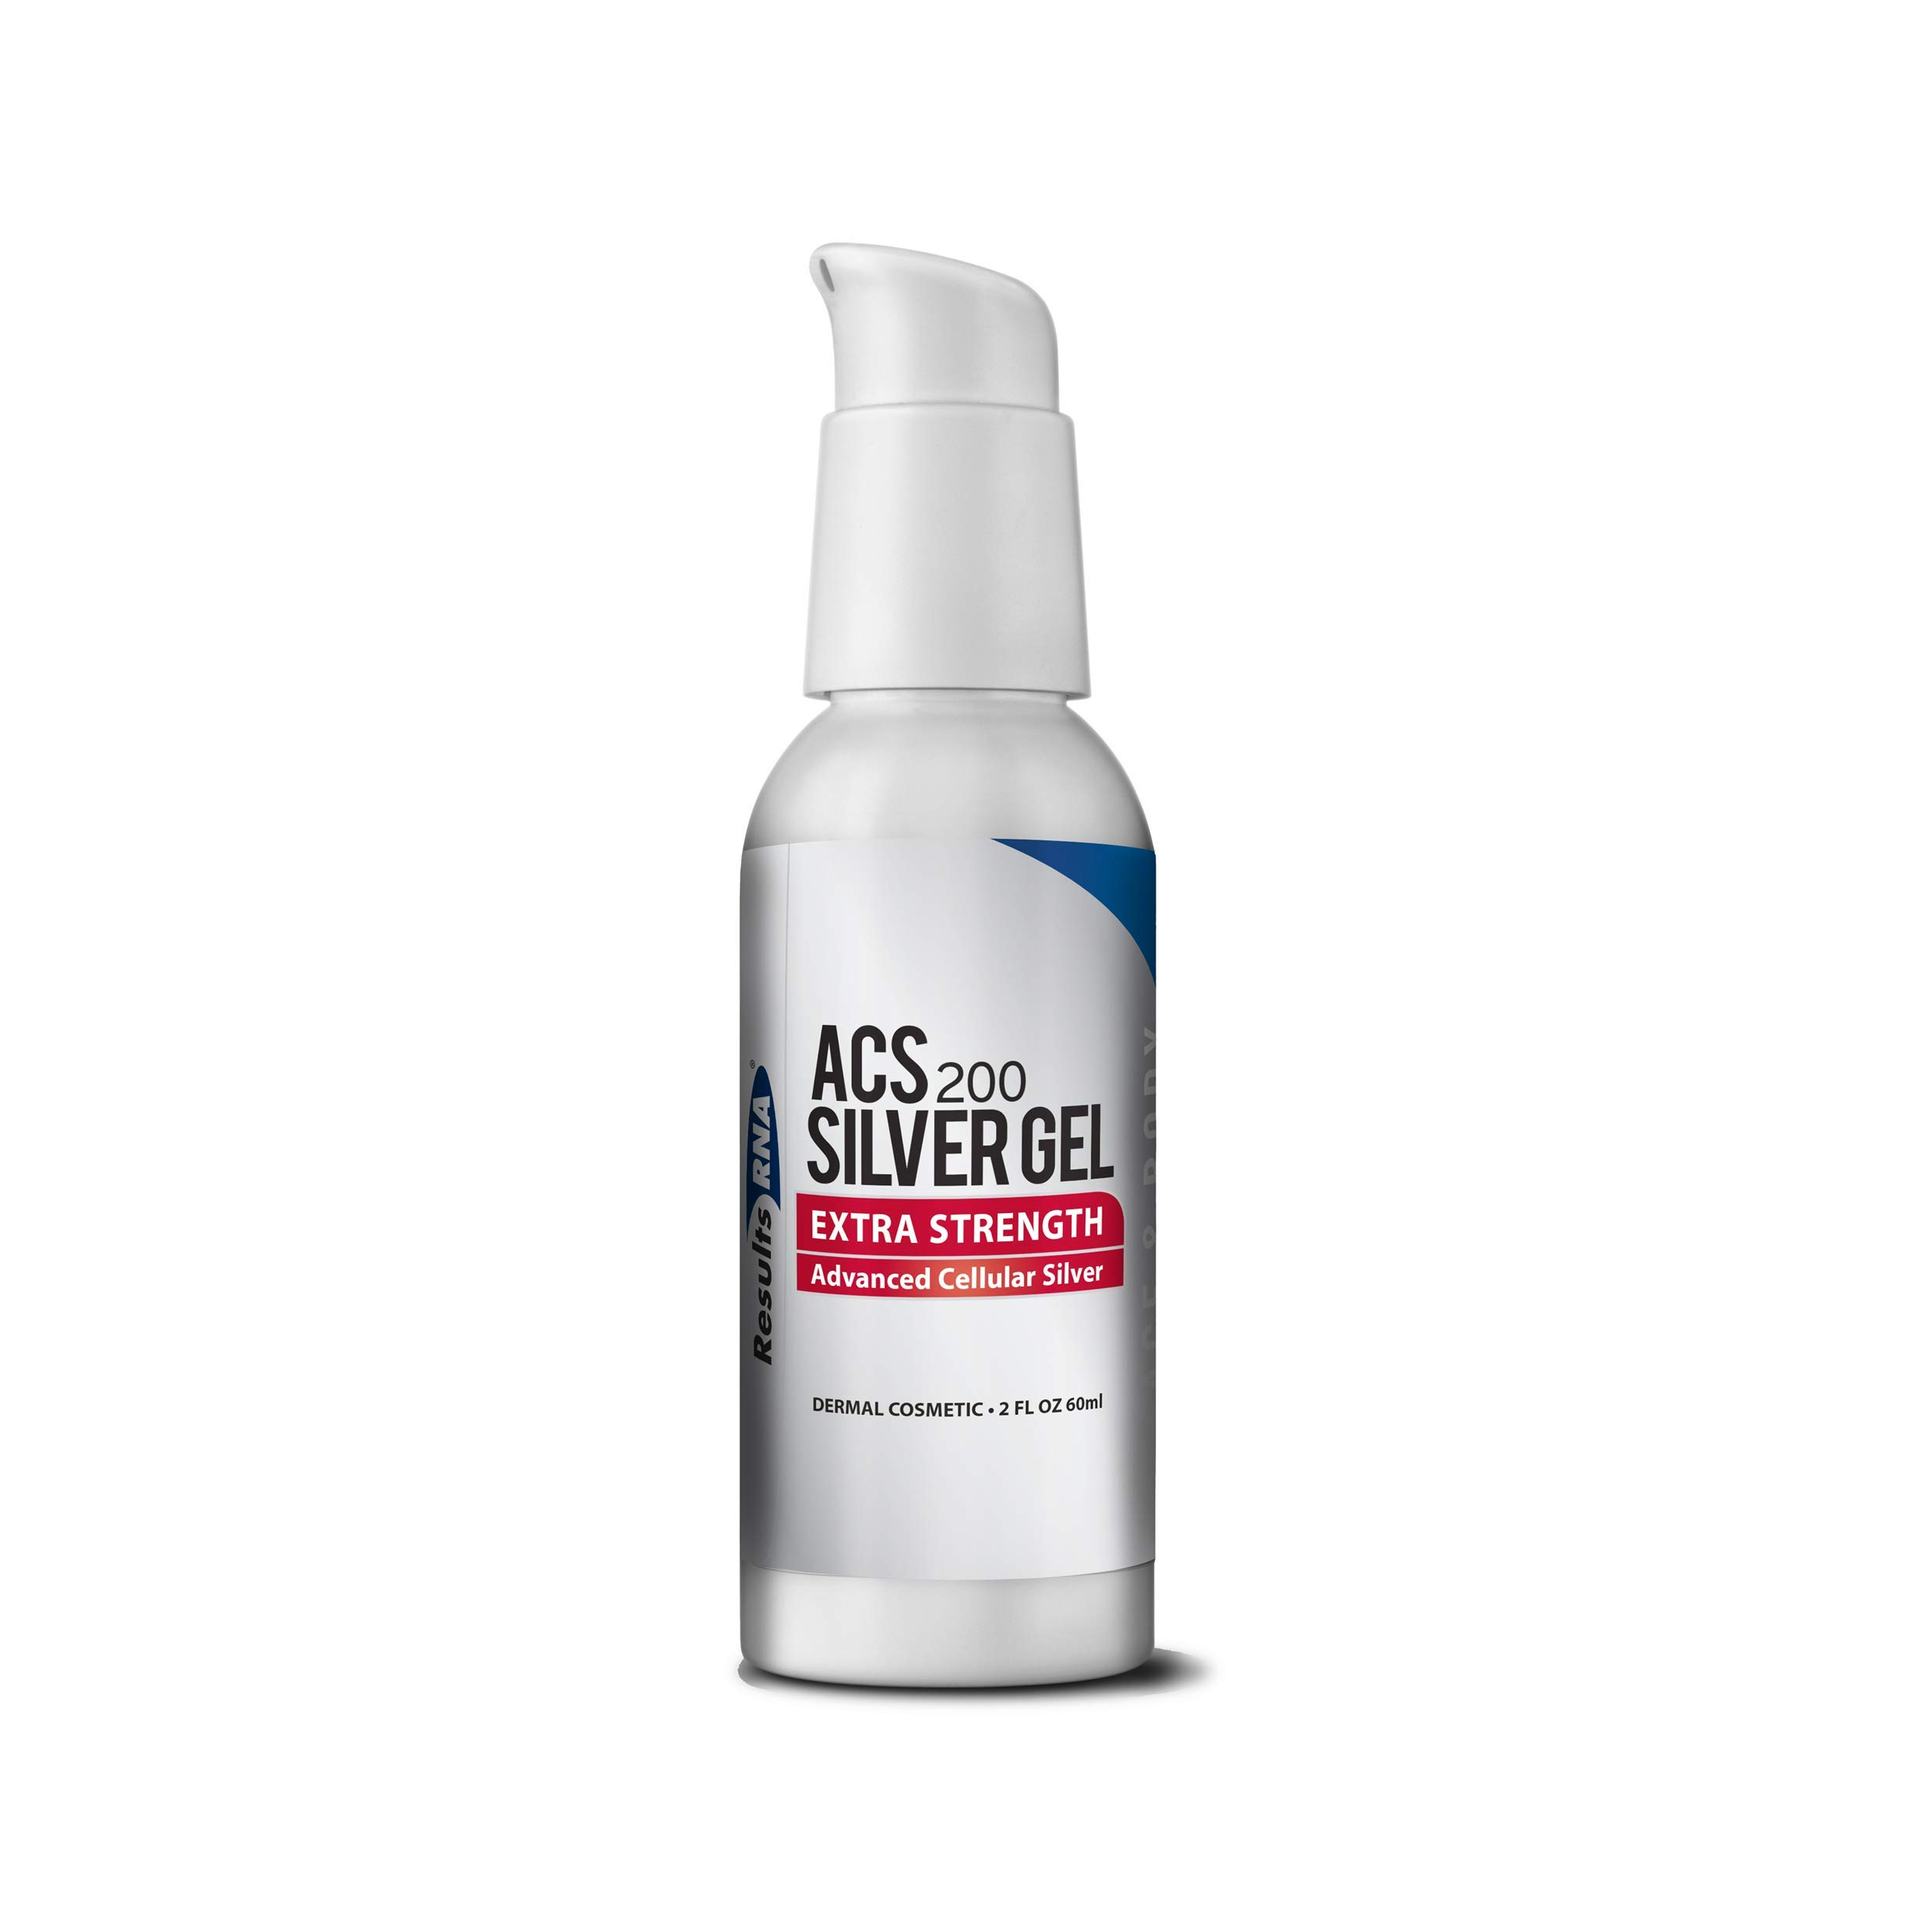 Results RNA ACS 200 Colloidal Silver Gel Extra Strength   Advanced Cellular Silver Topical Gel for Sunburn, Wounds, Rashes, Skin Irritations (2 Ounce)